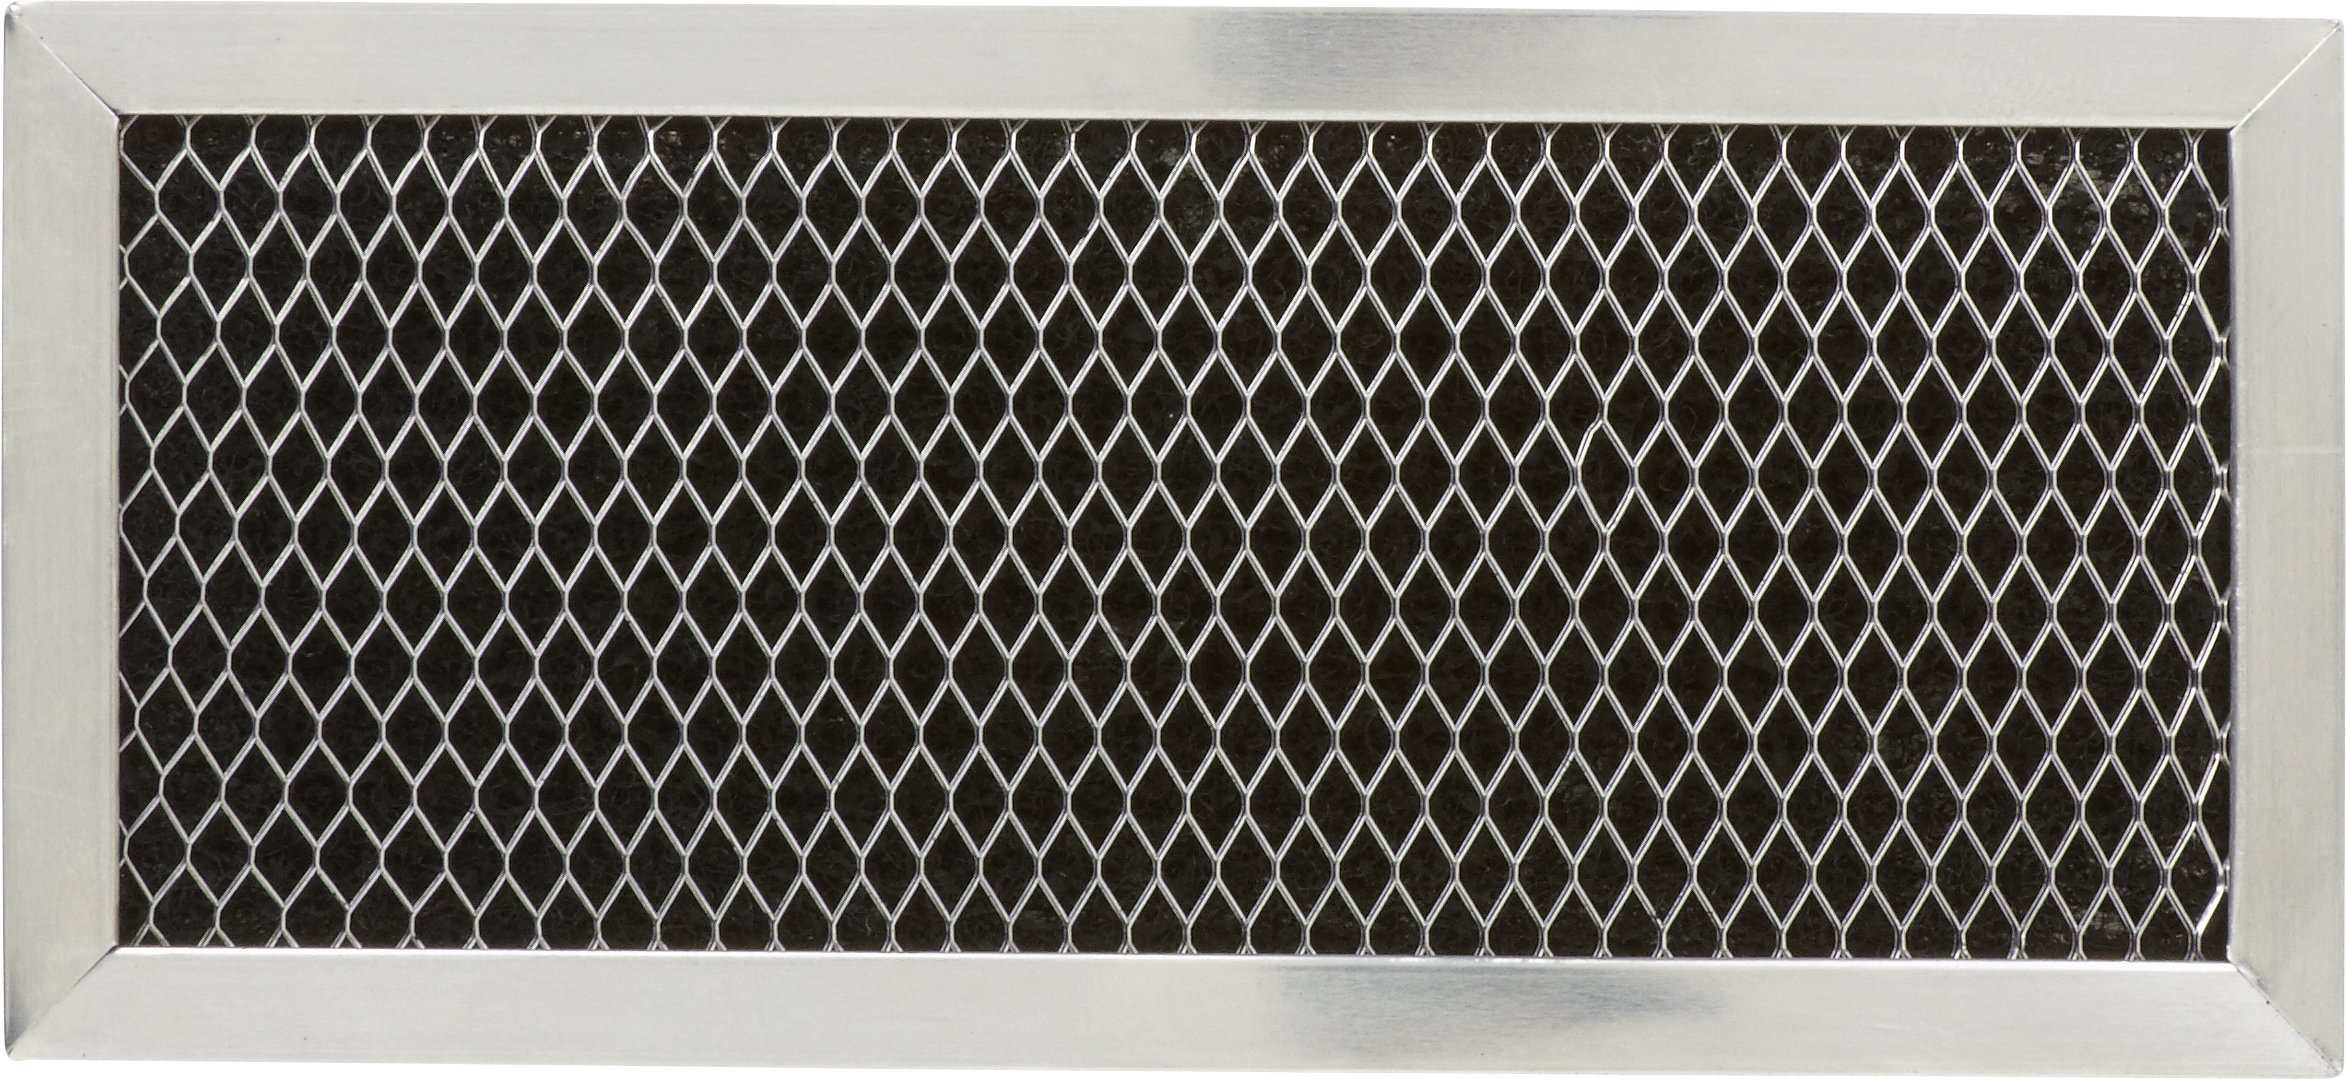 General Electric WB02X10956 Charcoal Filter